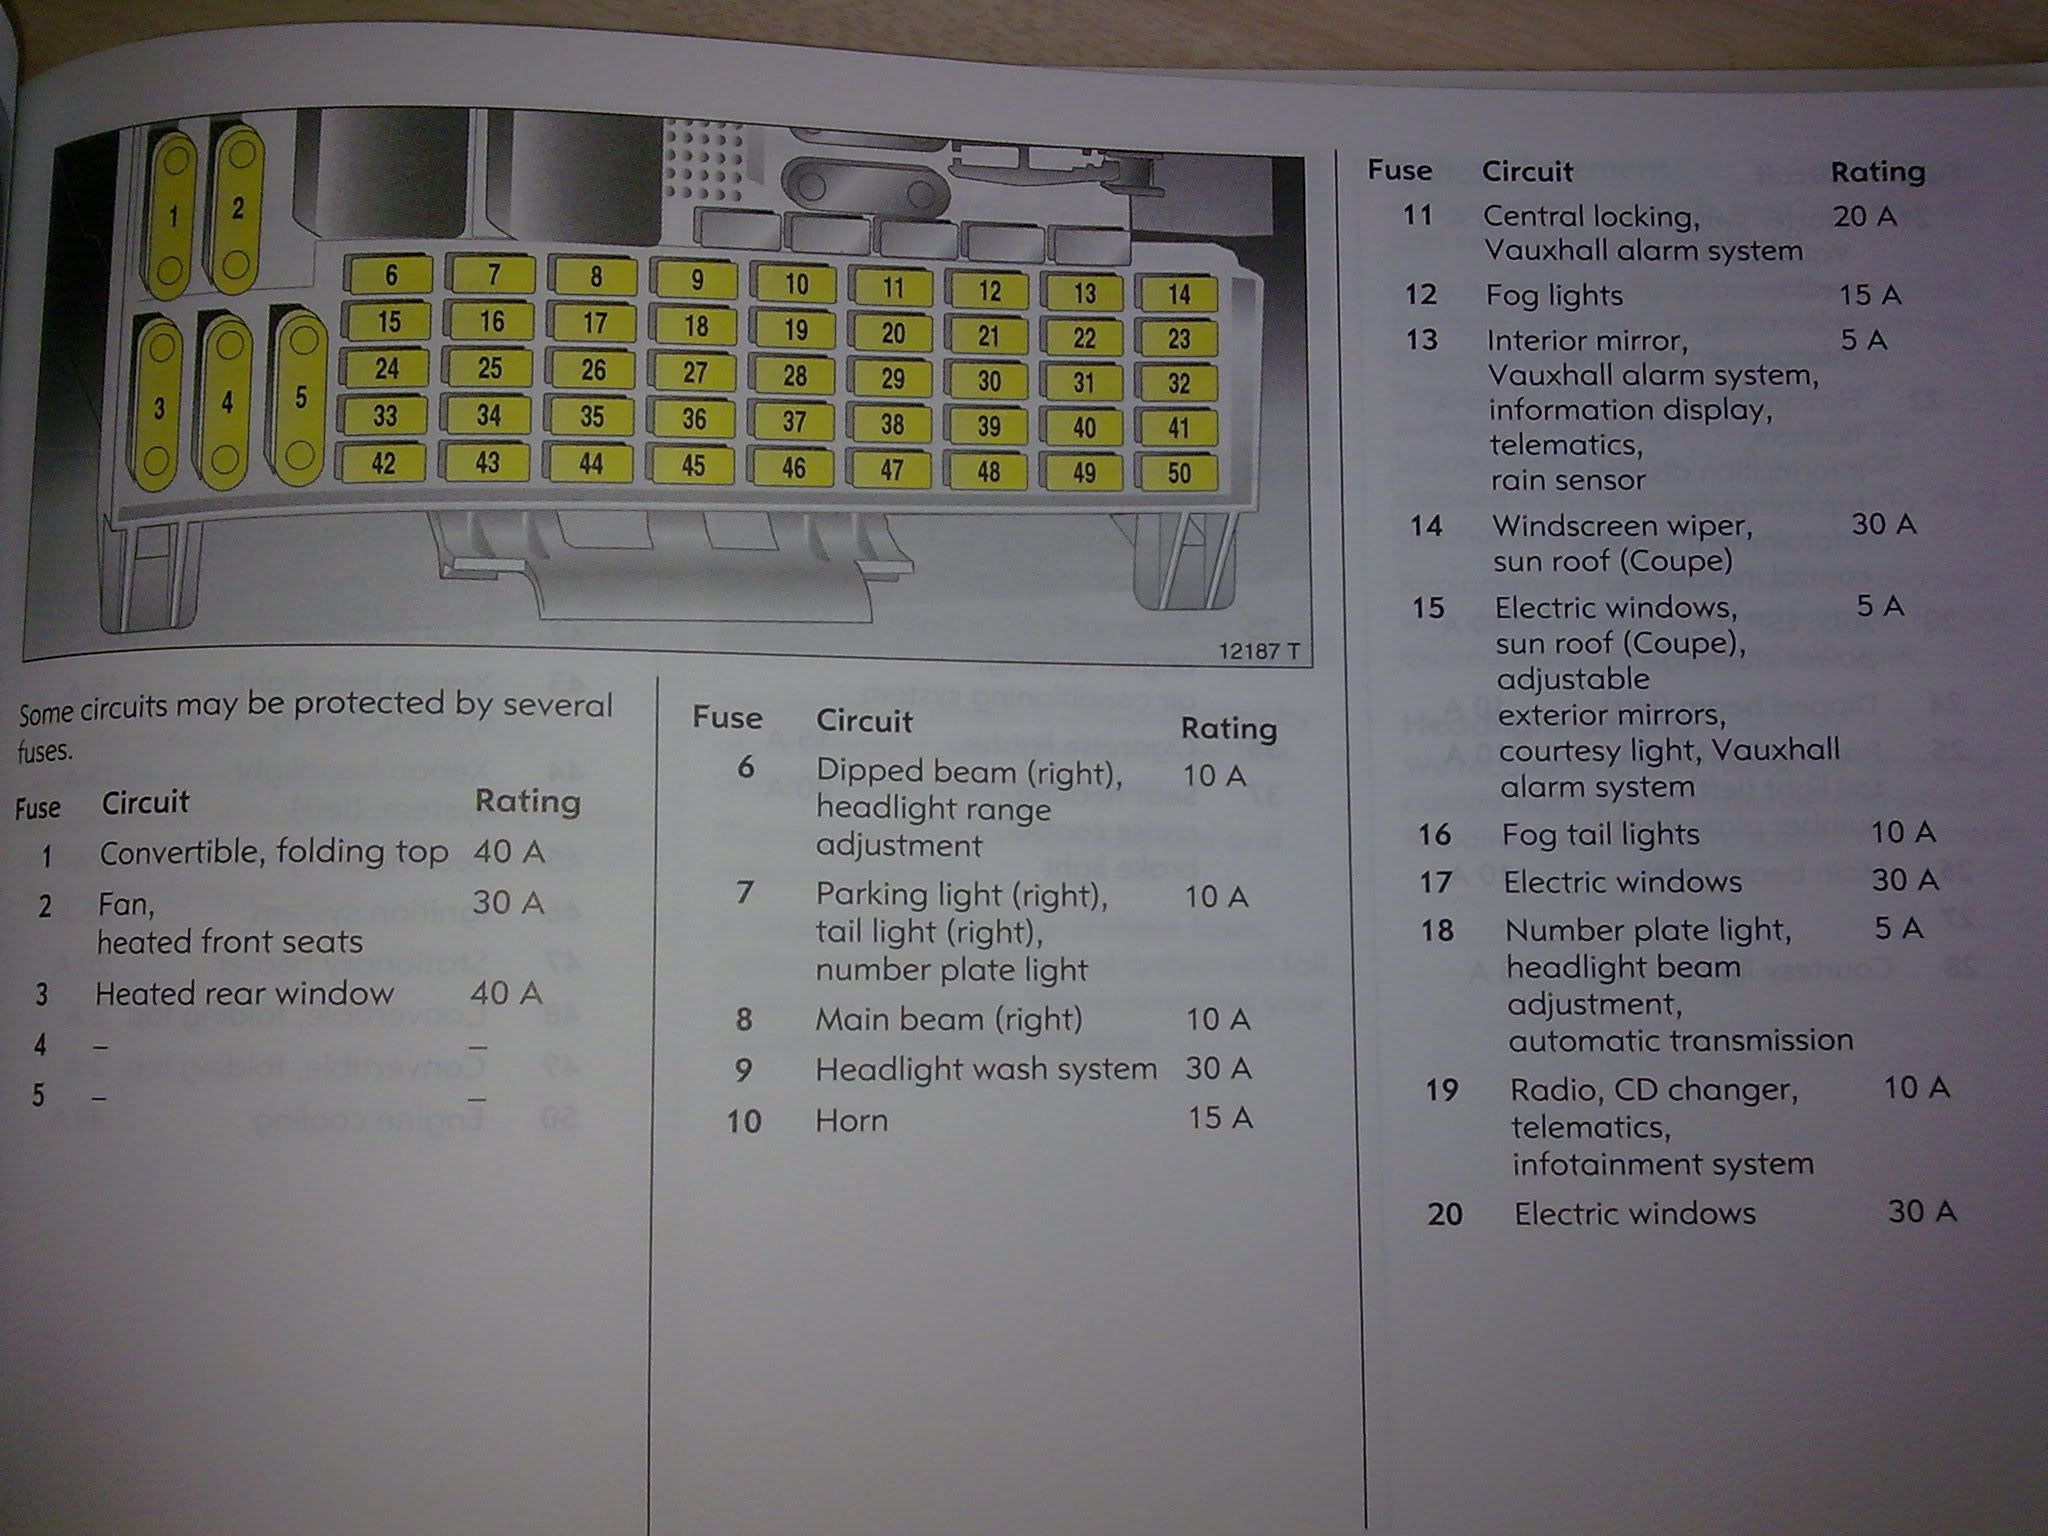 vauxhall astra g radio wiring diagram for four way switch http img photobucket albums v333 leesturbo image596